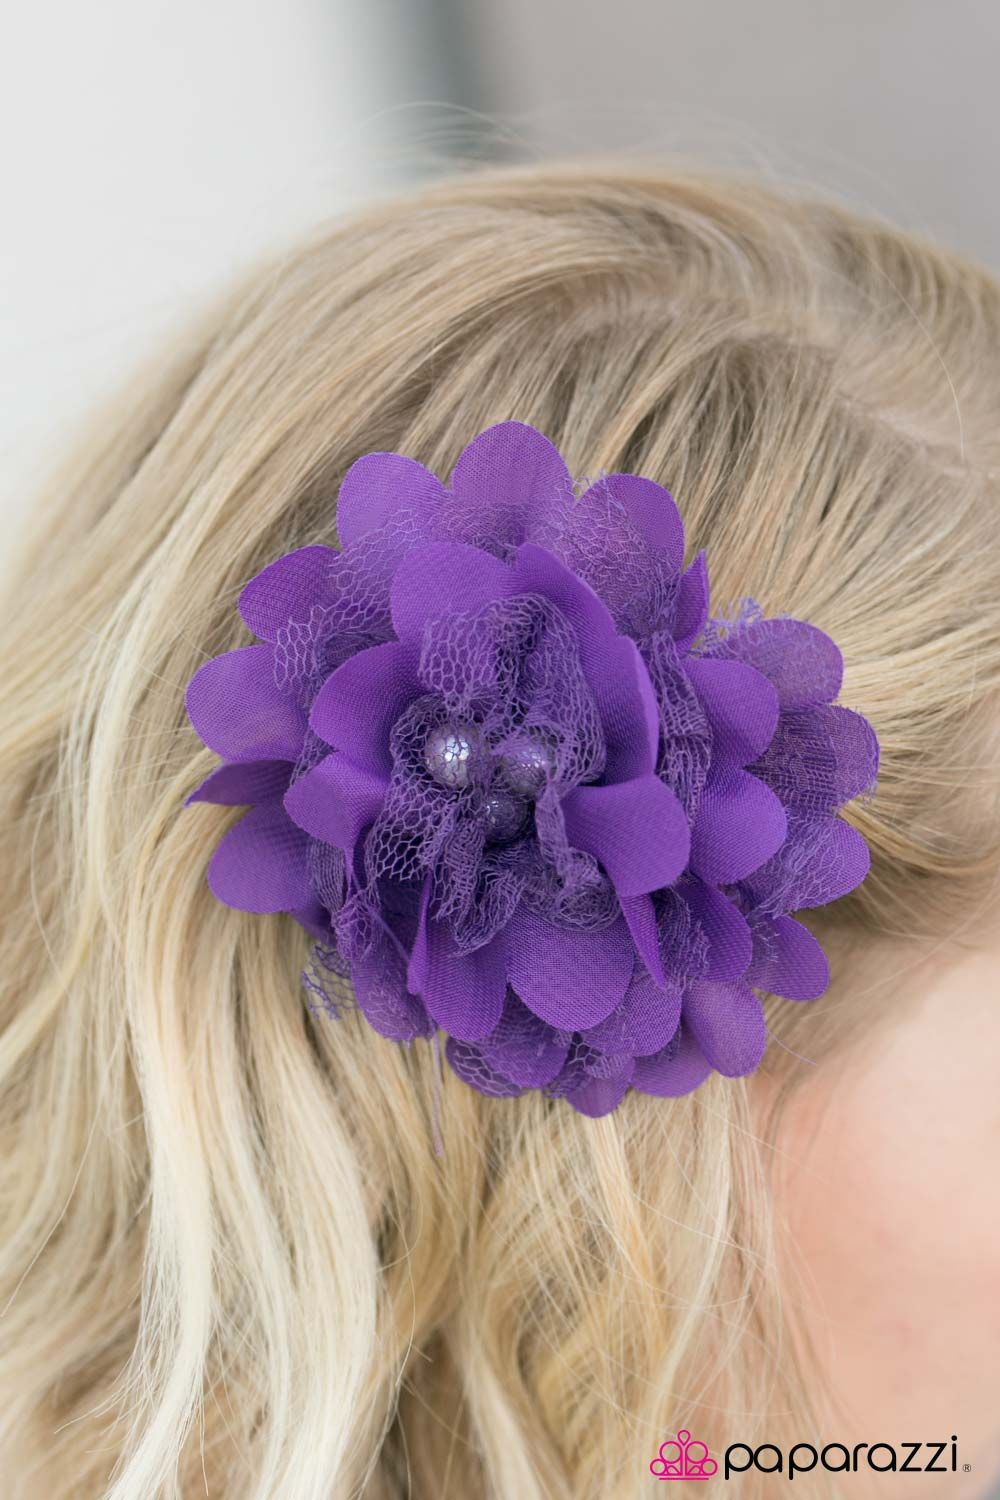 Hair bow button accessories - Madame Hatter 5 Hair Accessories Headbands And Jewelry Purple Tulle Flower